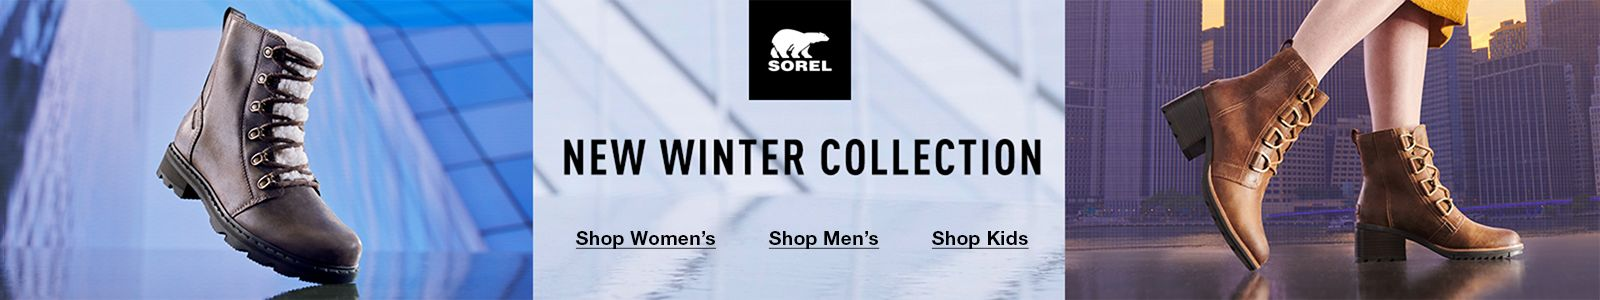 Sorel, New Winter Collection, Shop Women's, Shop Men's, Shop Kids